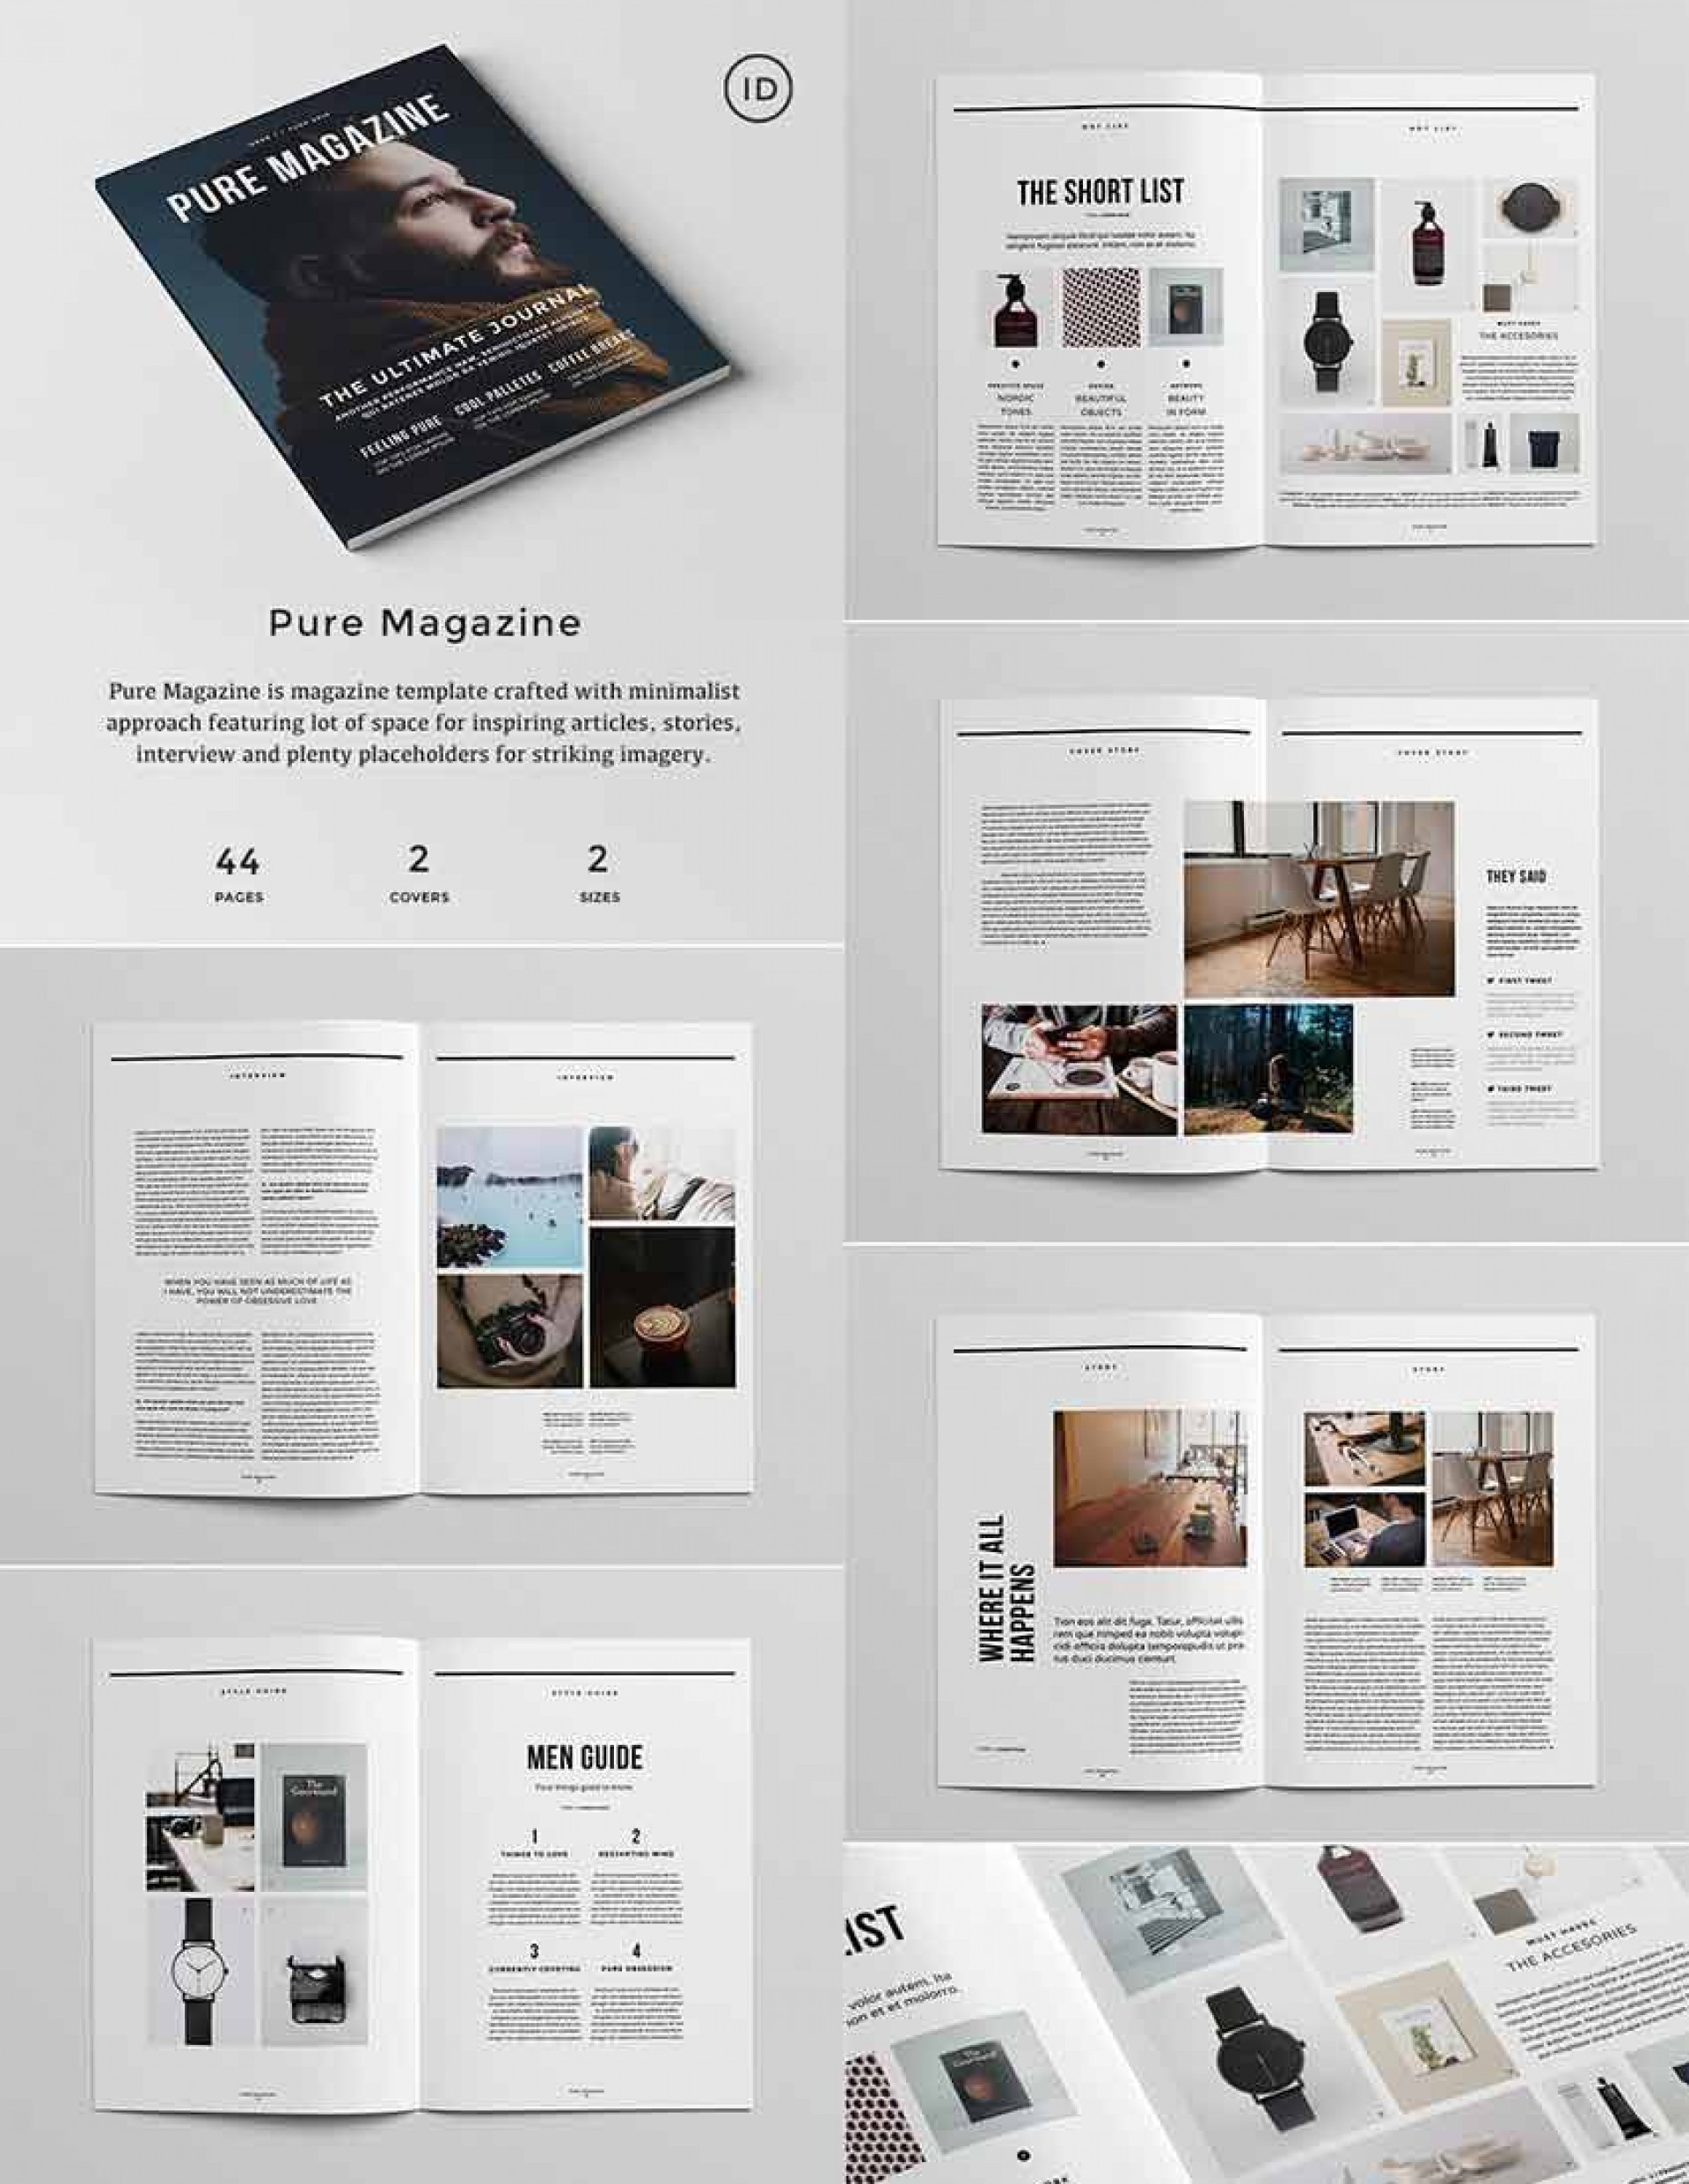 006 Archaicawful Magazine Template For Microsoft Word Inspiration  Layout Design Download1920